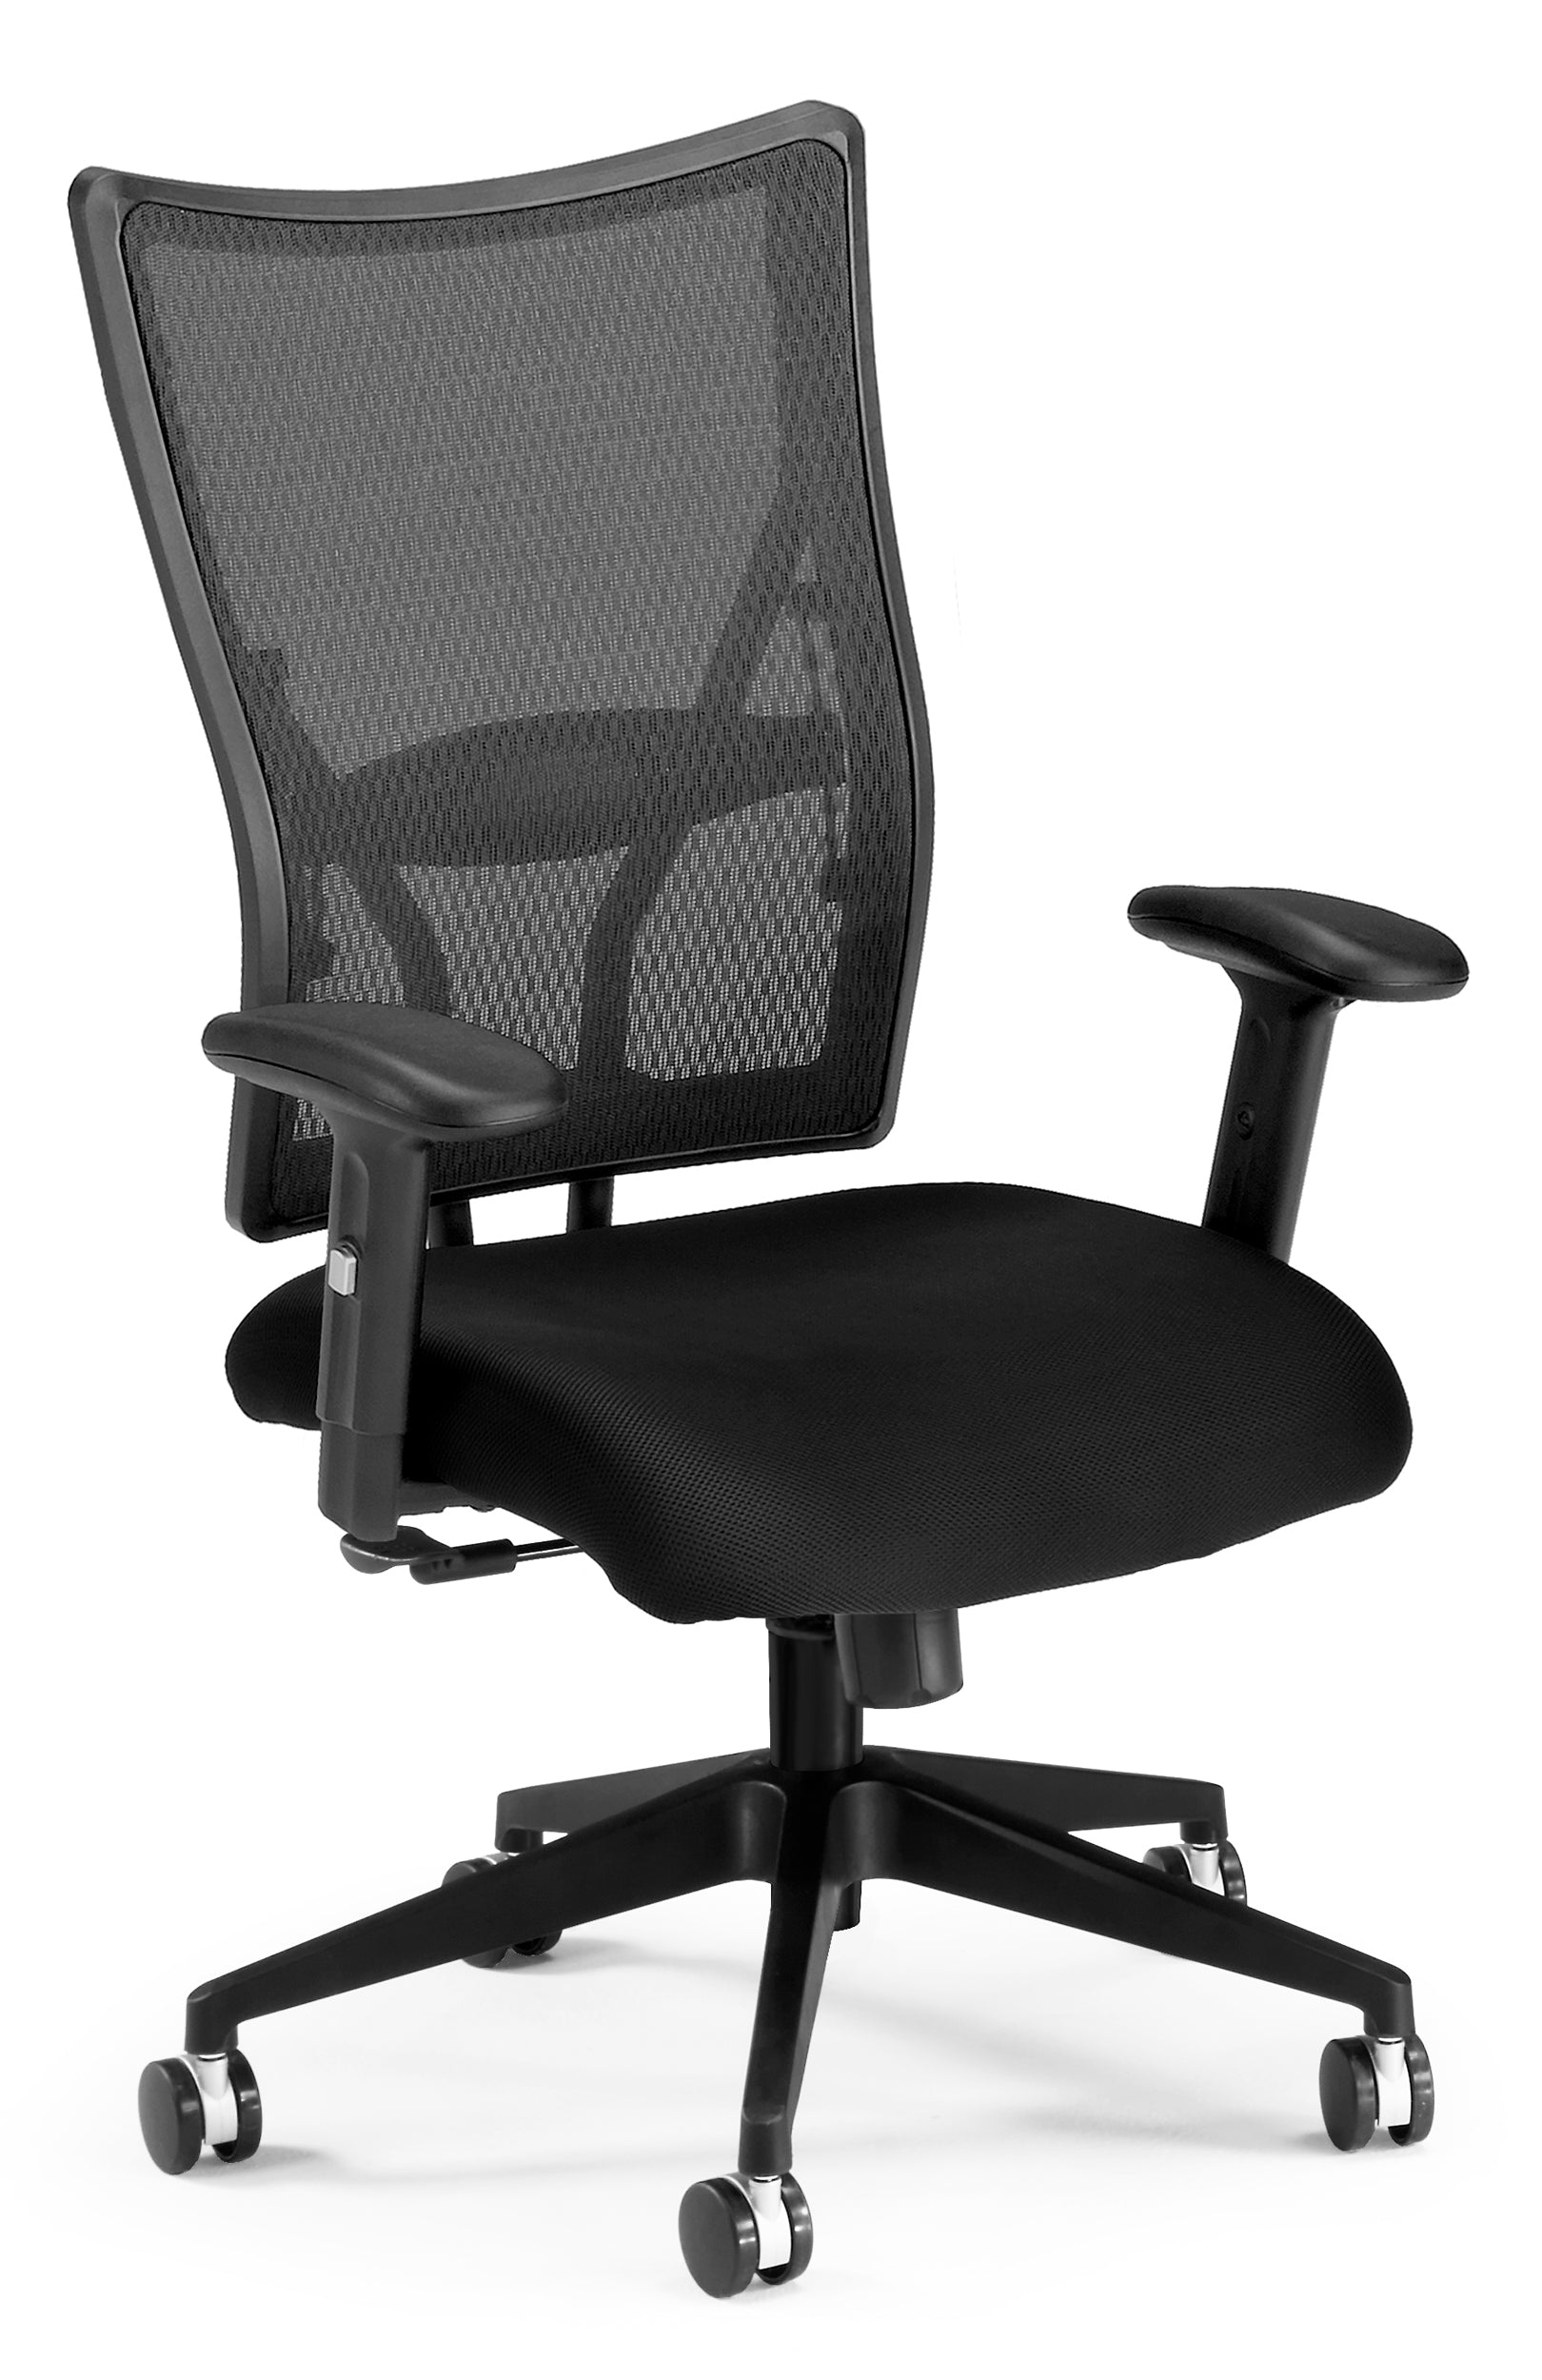 591-F Talisto Series High-Back Fabric / Mesh Executive Office Chair